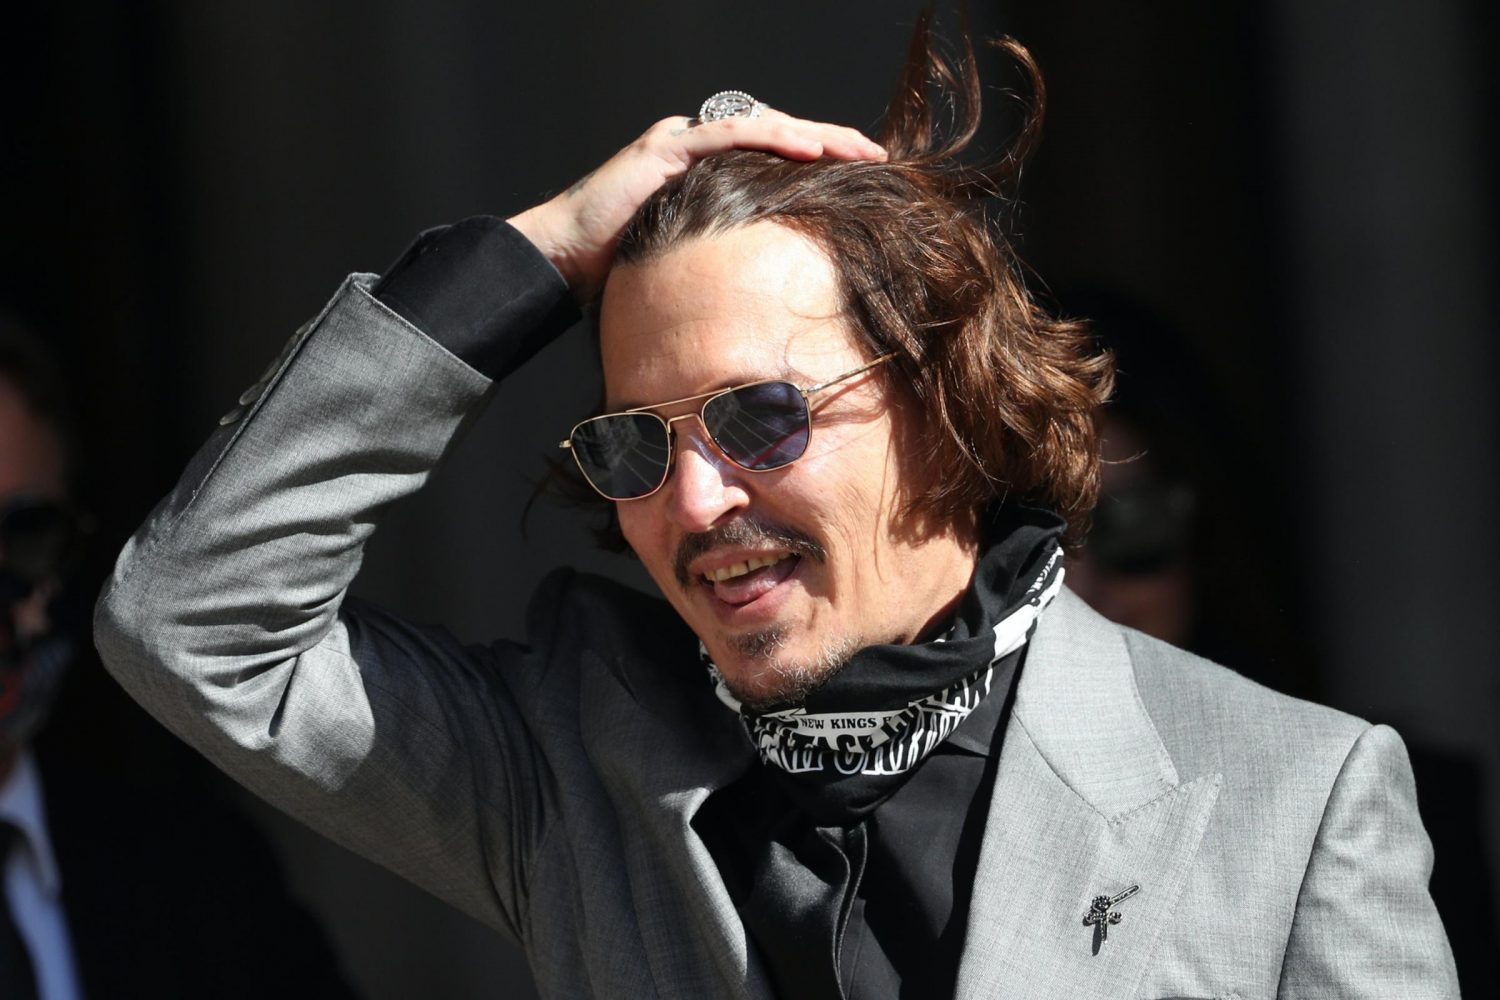 depp gets a legal victory